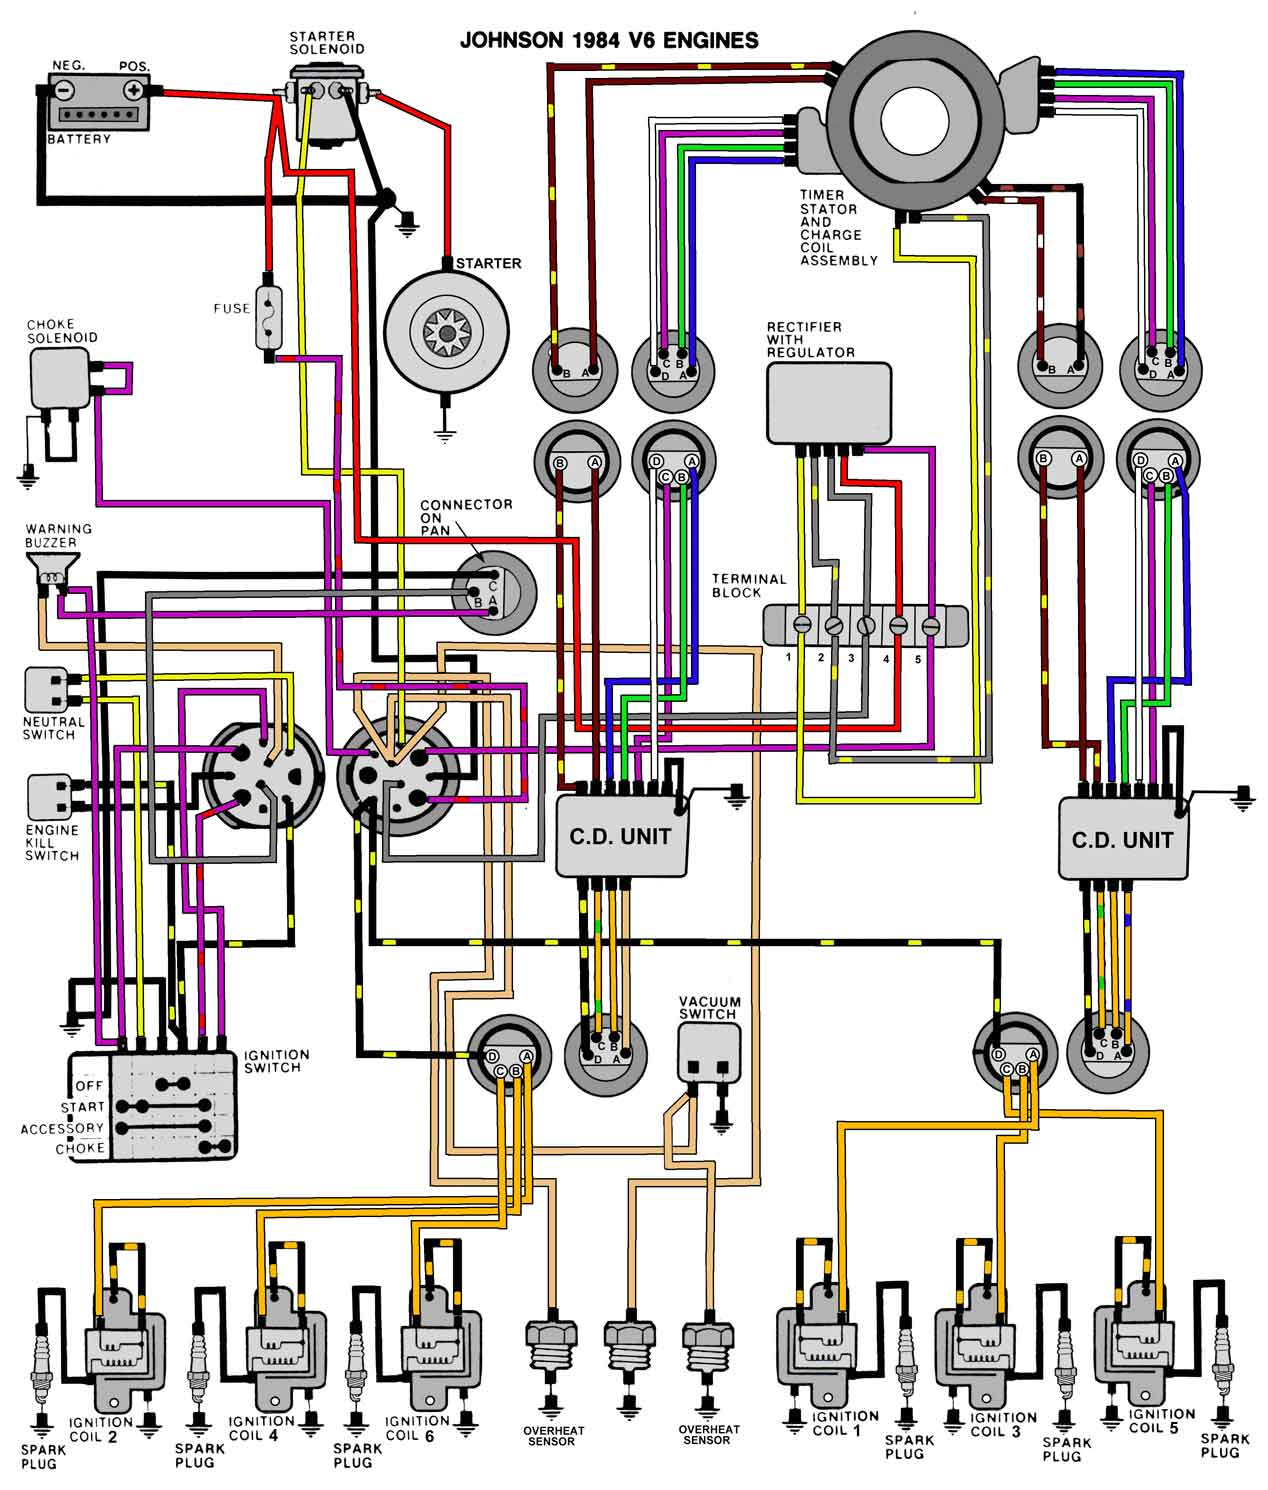 hight resolution of evinrude wiring harness connectors wiring diagram origin painless wiring harness evinrude johnson outboard wiring diagrams mastertech